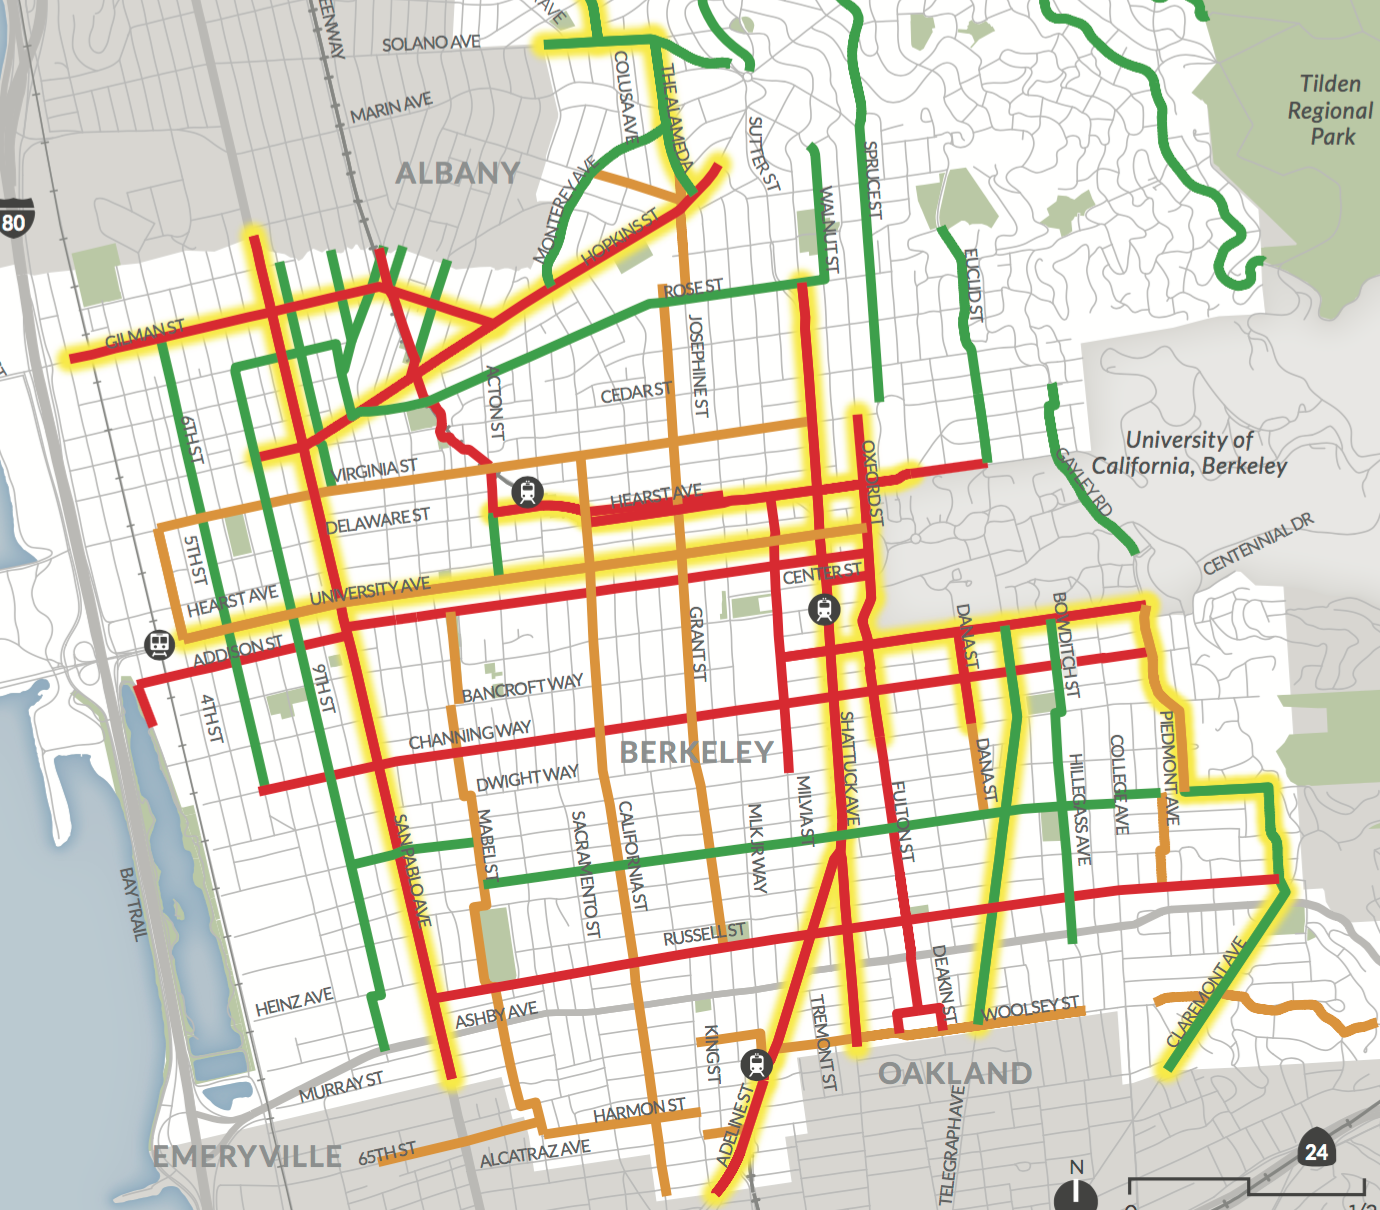 Berkeley Tier 1 Priority Bike Network.png